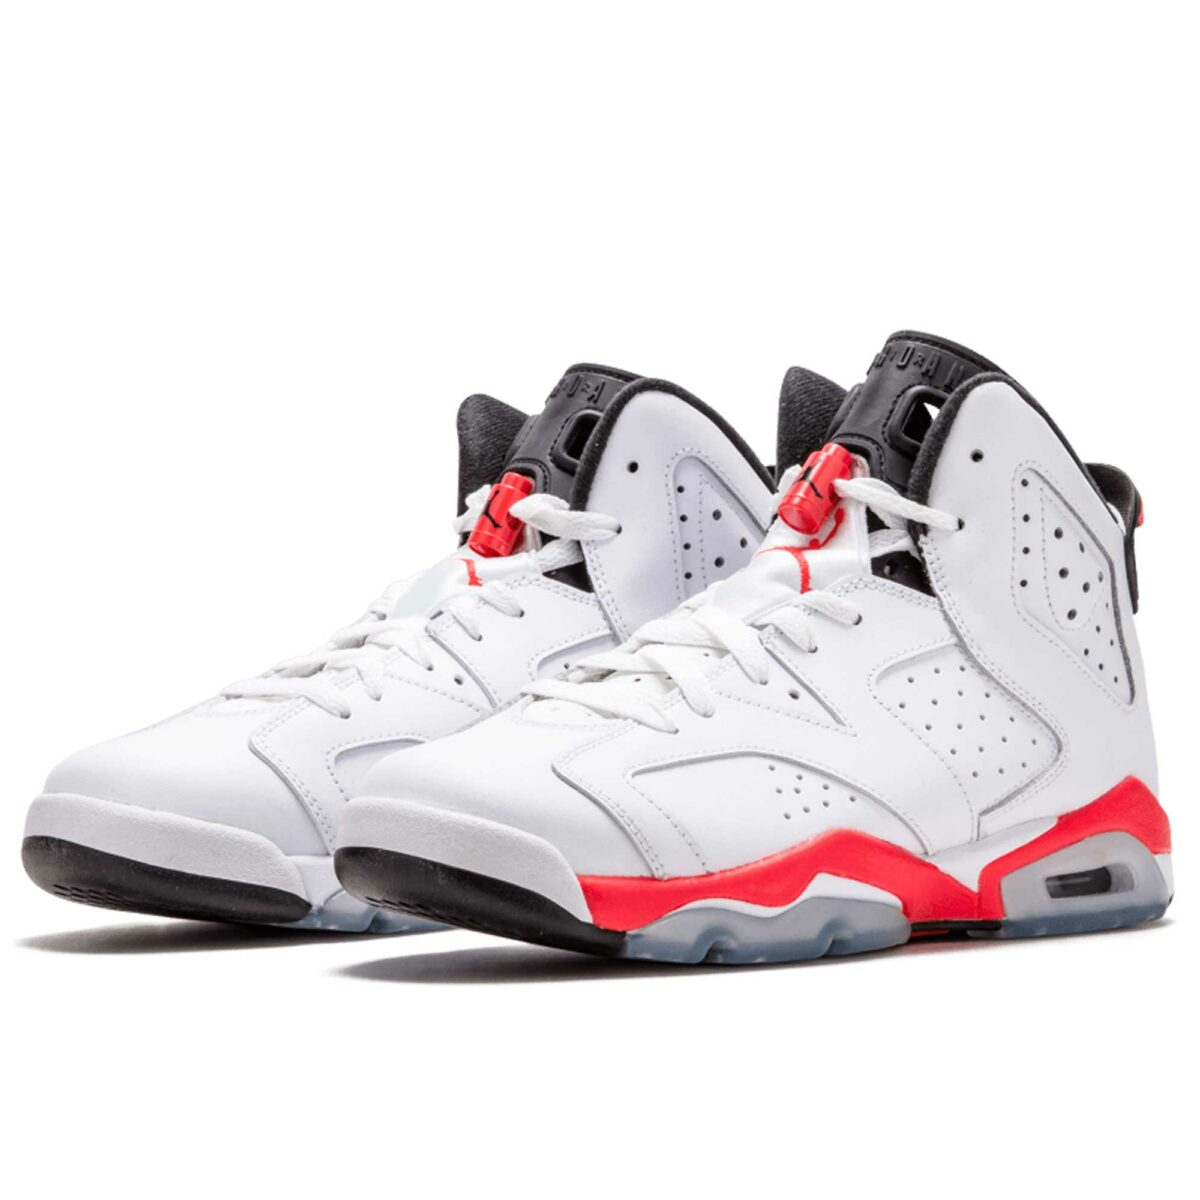 nike air Jordan 6 retro BG white red black 384665_123 купить